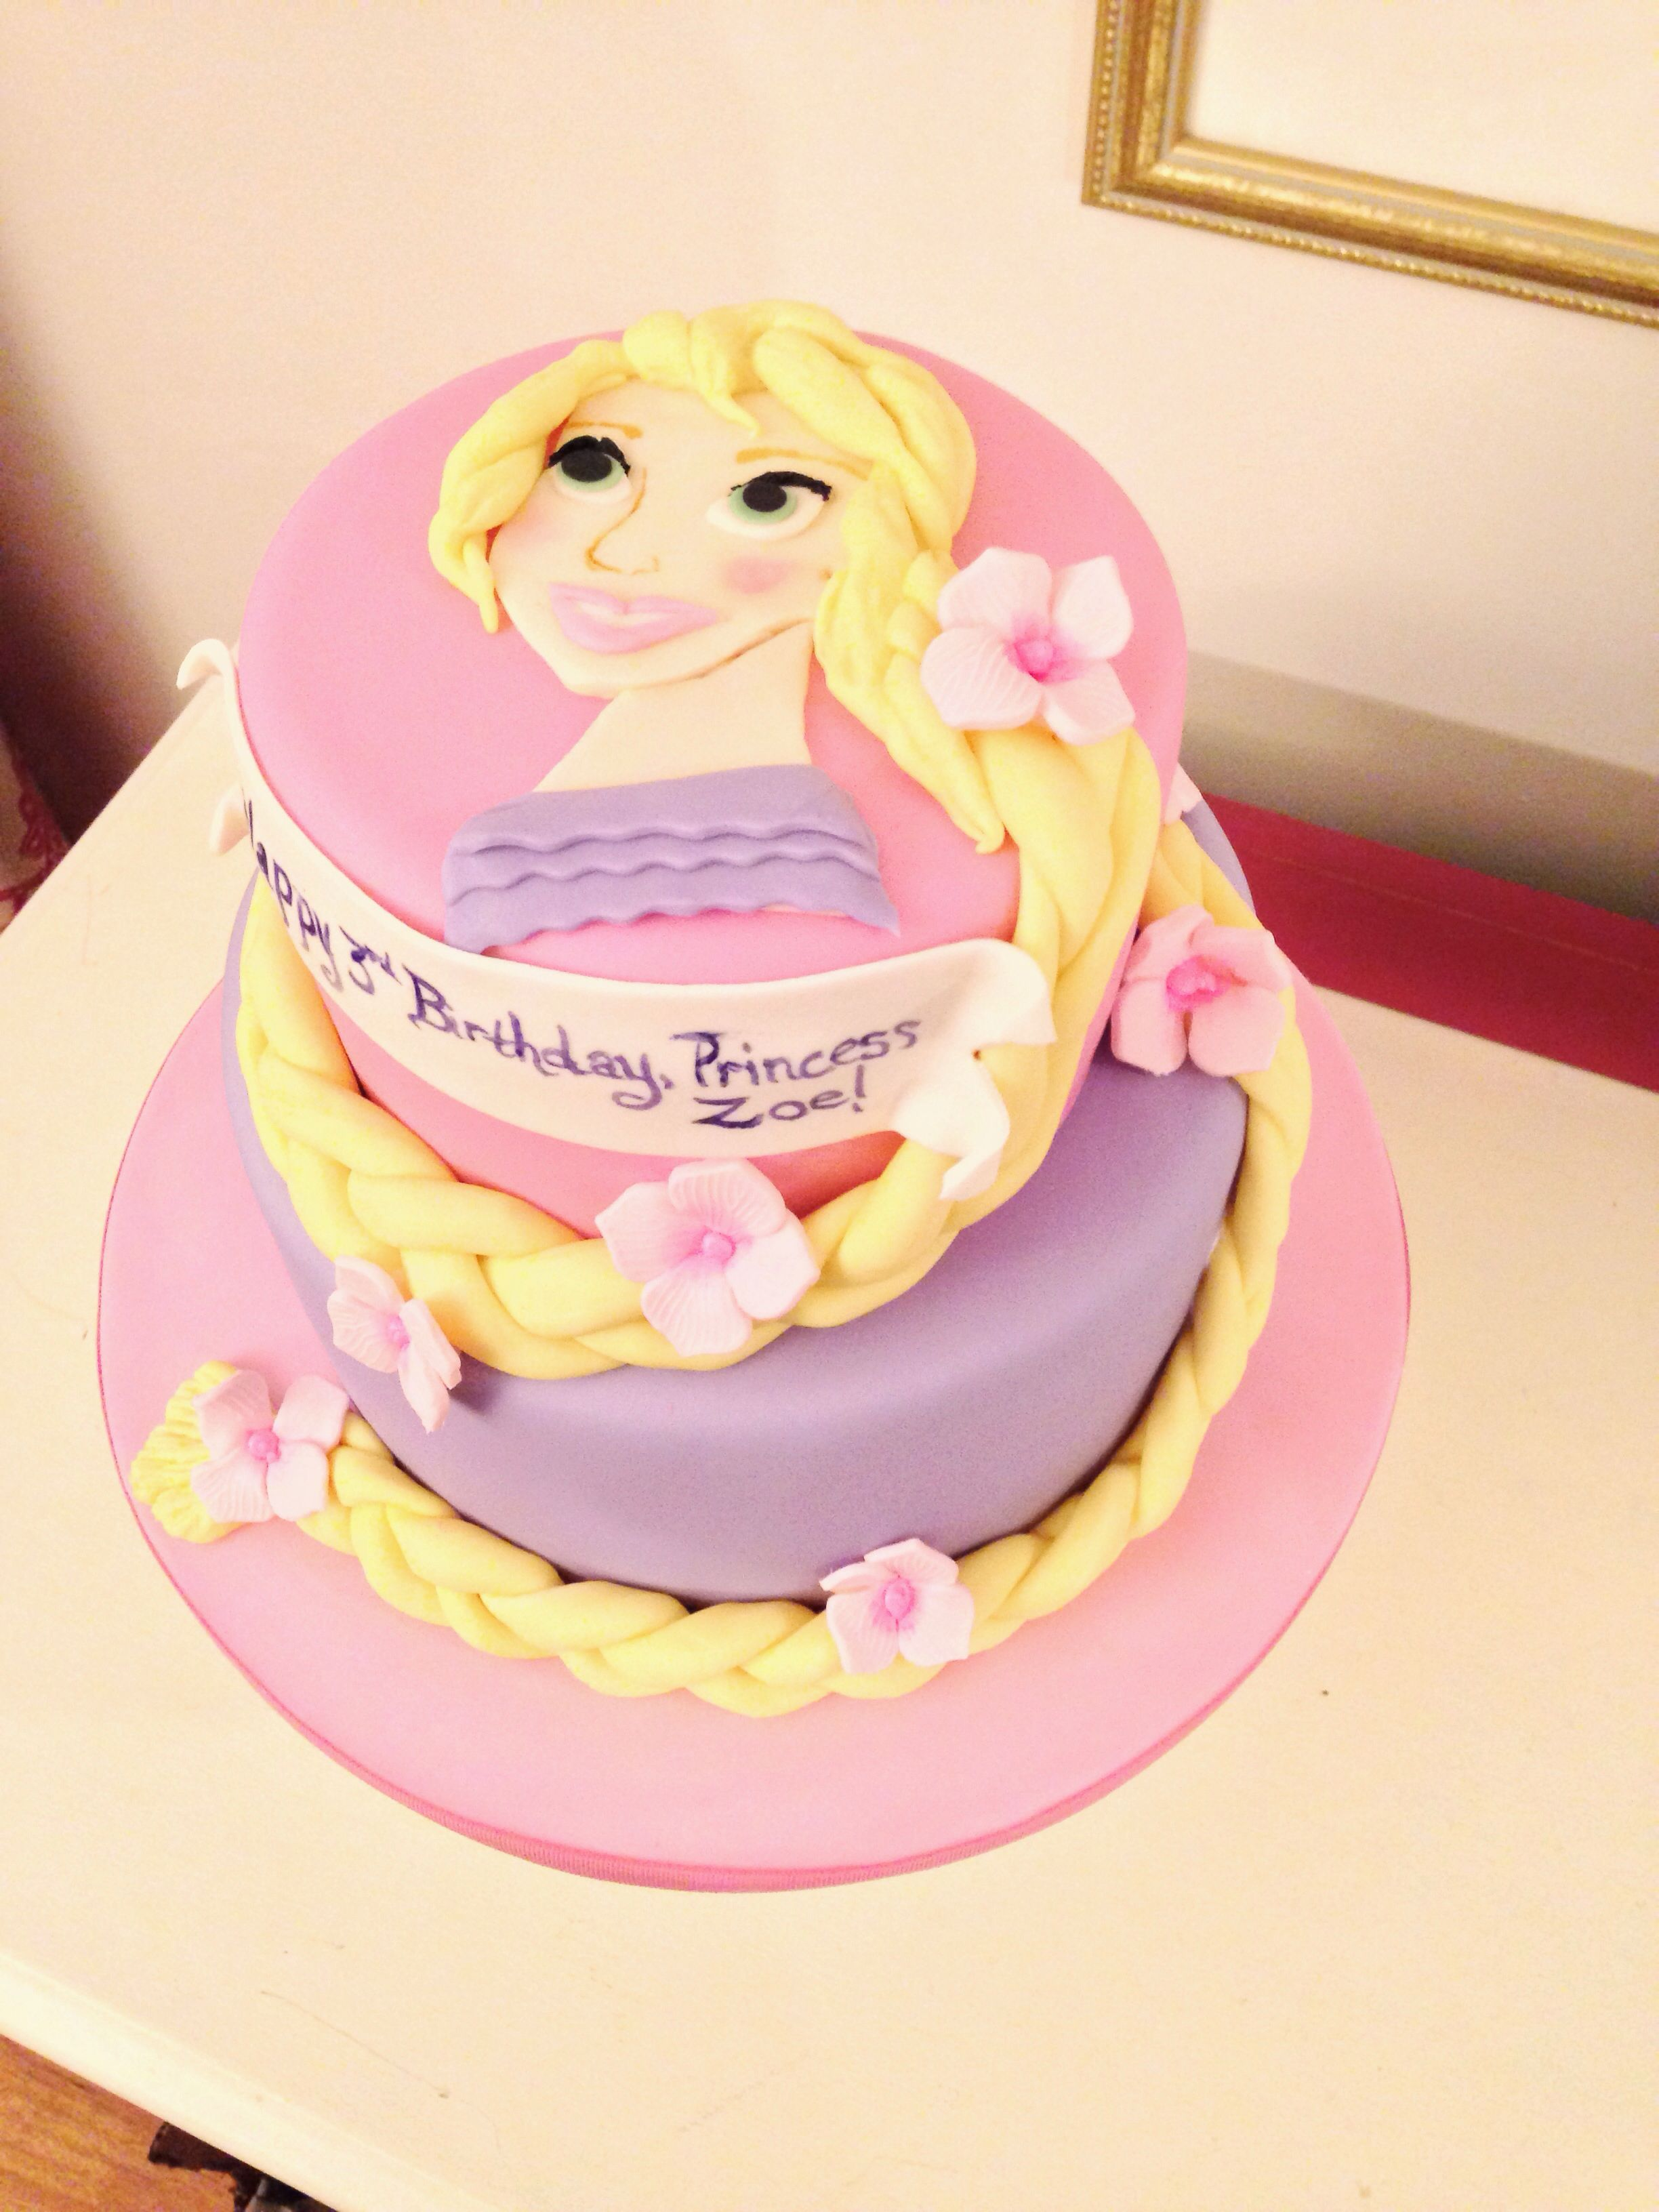 Rapunzel Tangeled Cake by Amy Hart